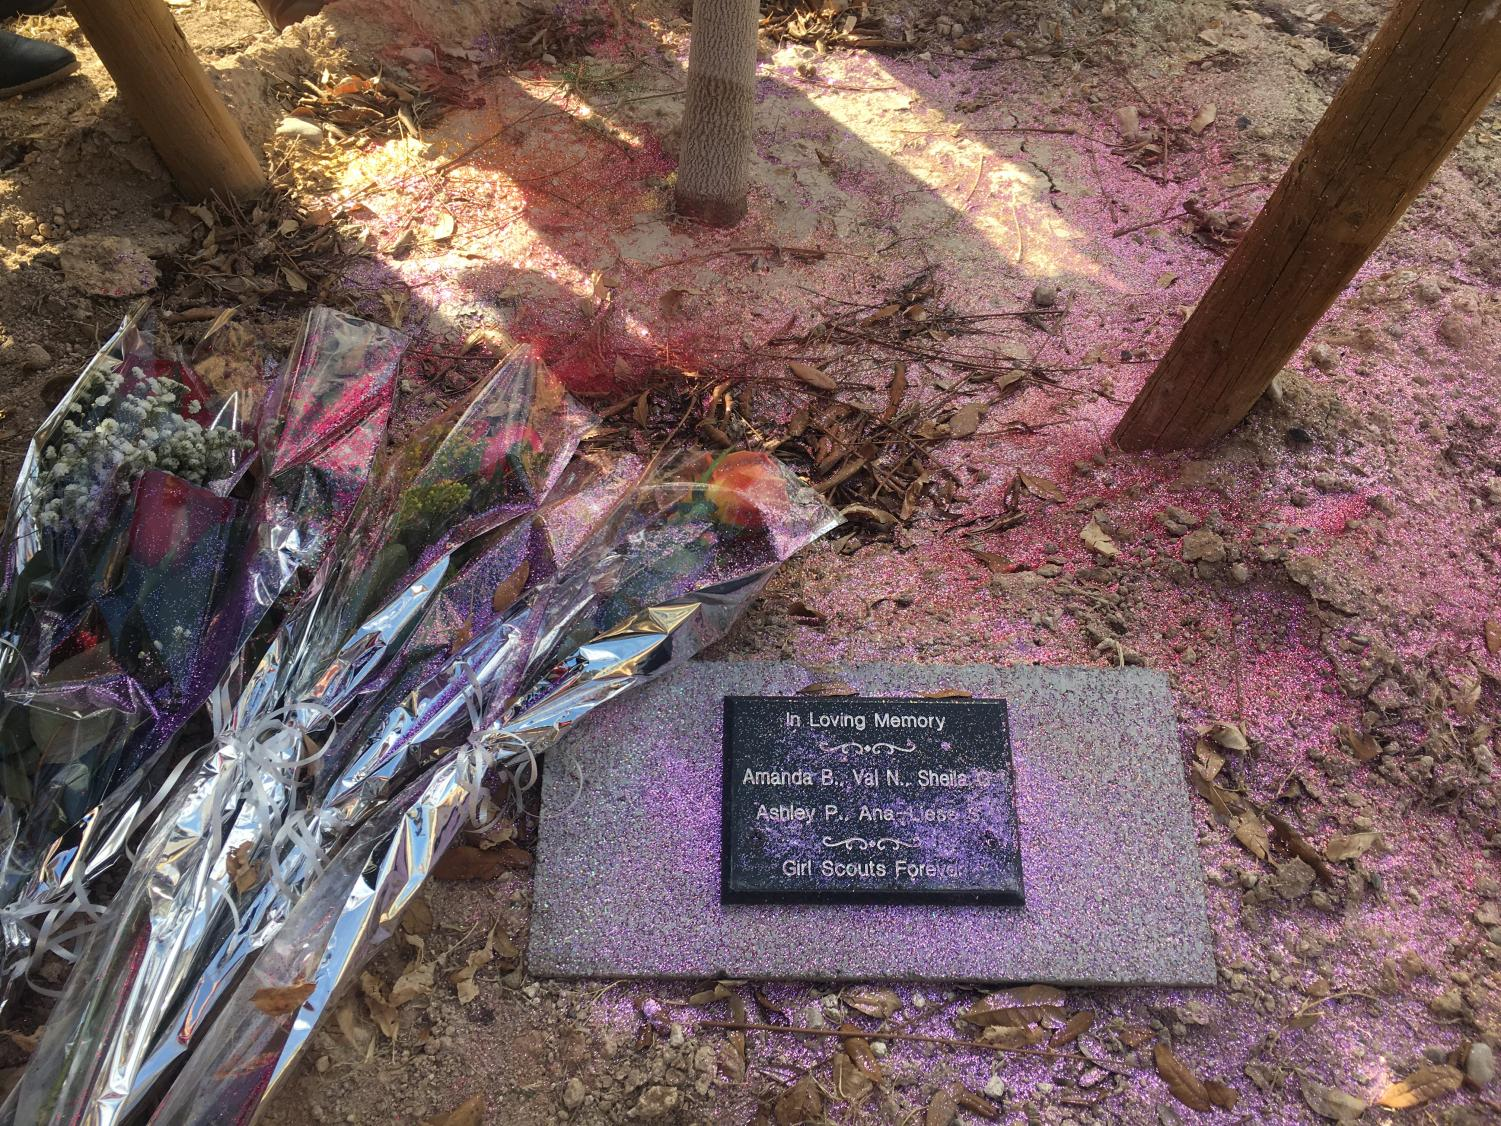 Rainbow glitter is sprinkled around the base of the tree to symbolize the color Ashley brought to the lives of many people.